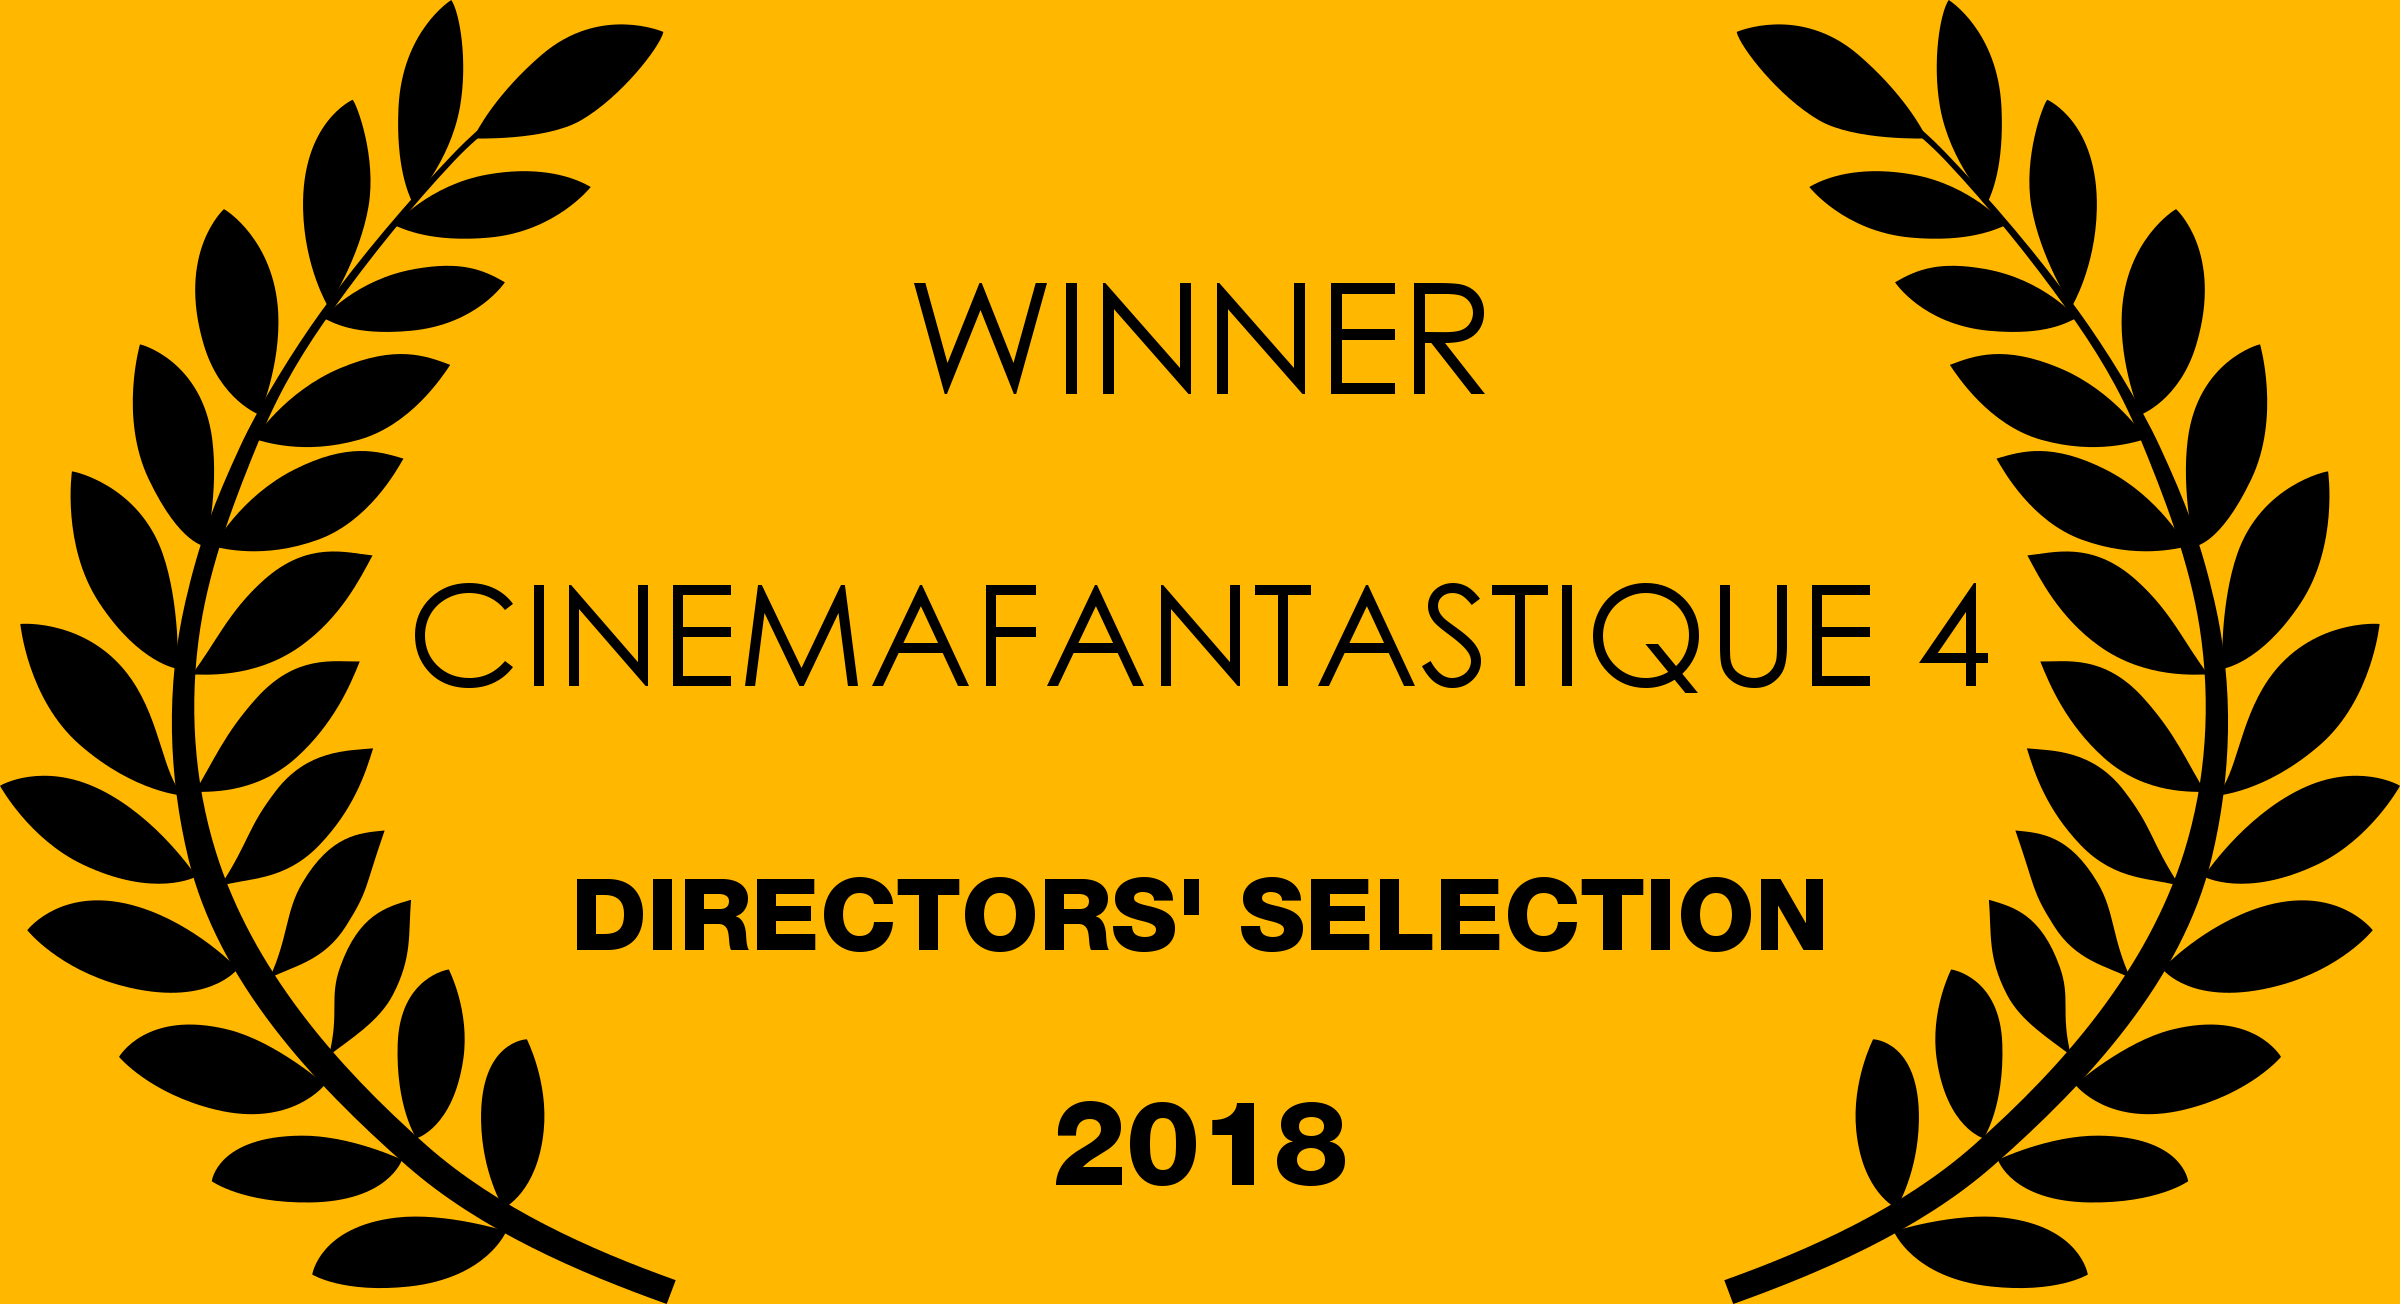 CF4_laurel_BLACK - WINNERS_directors_selection_2